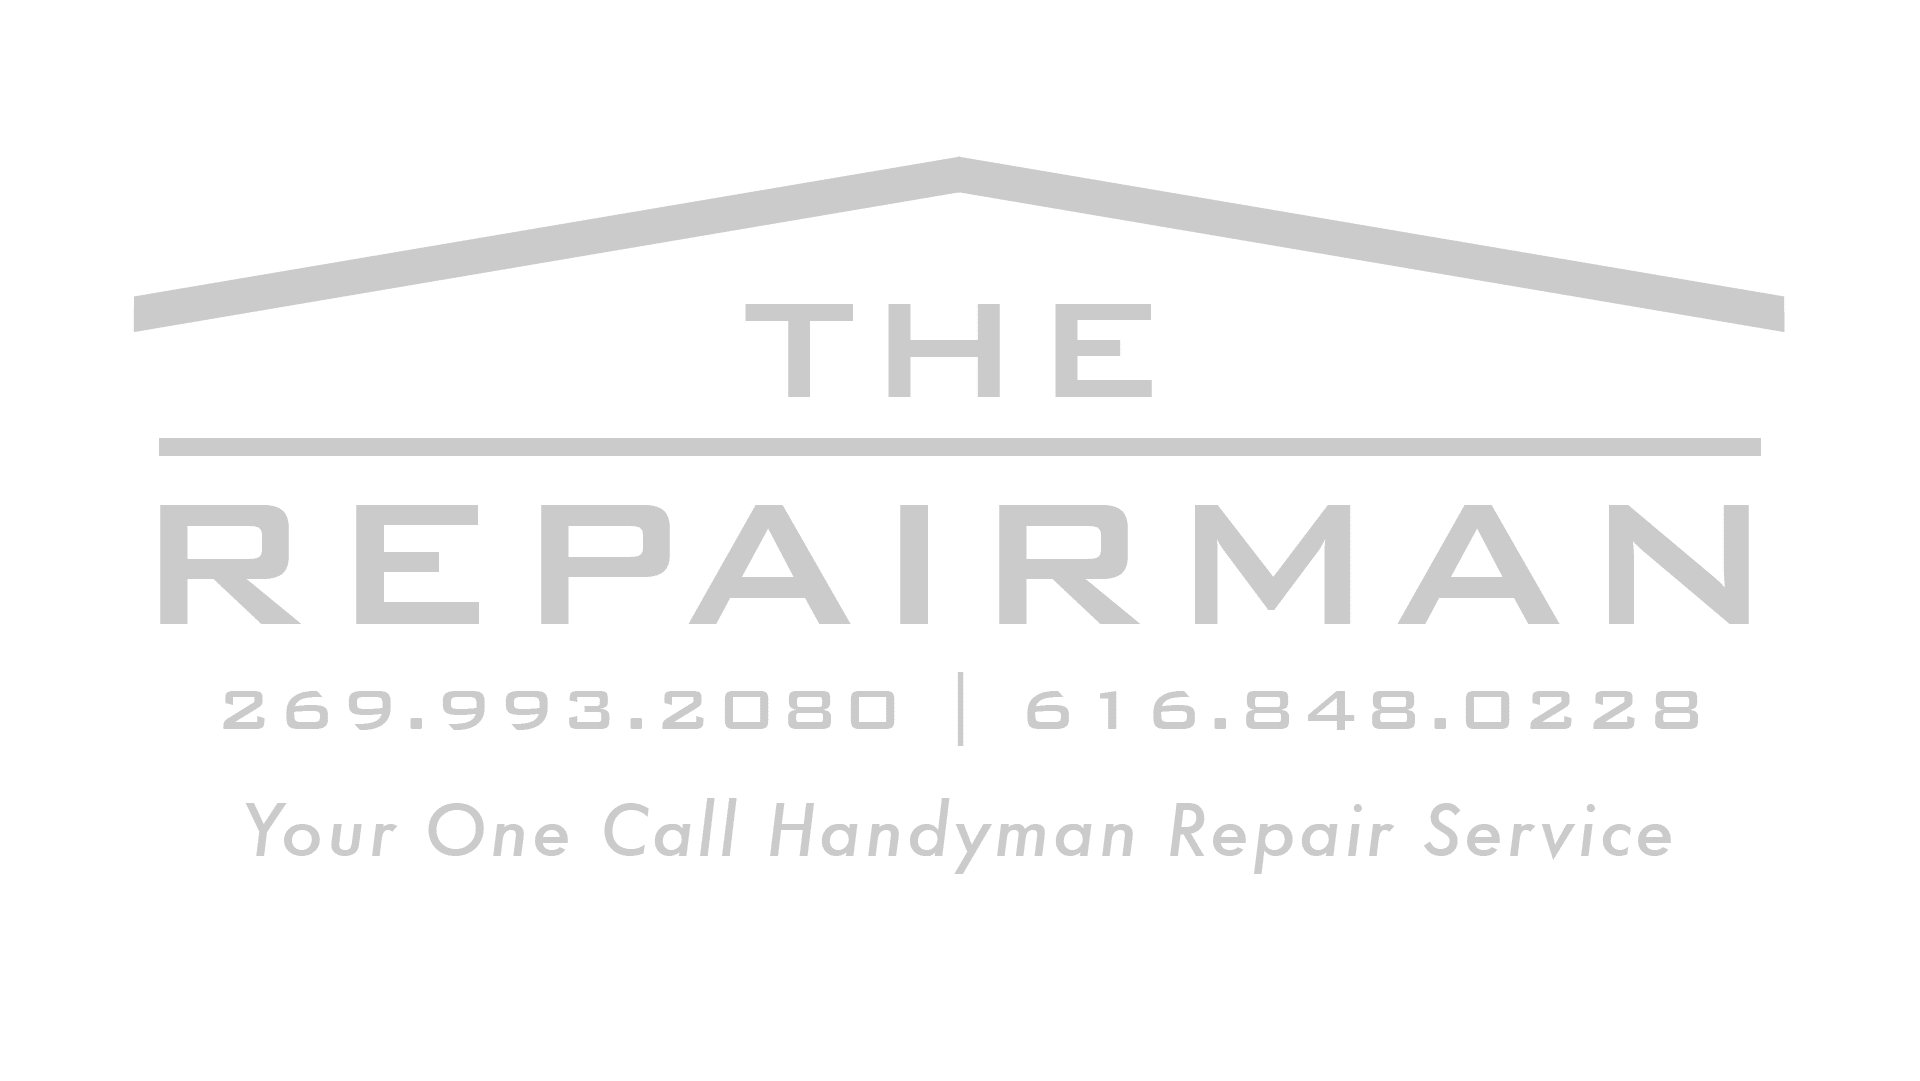 Home Electrical & Plumbing Repairs Kalamazoo & Grand